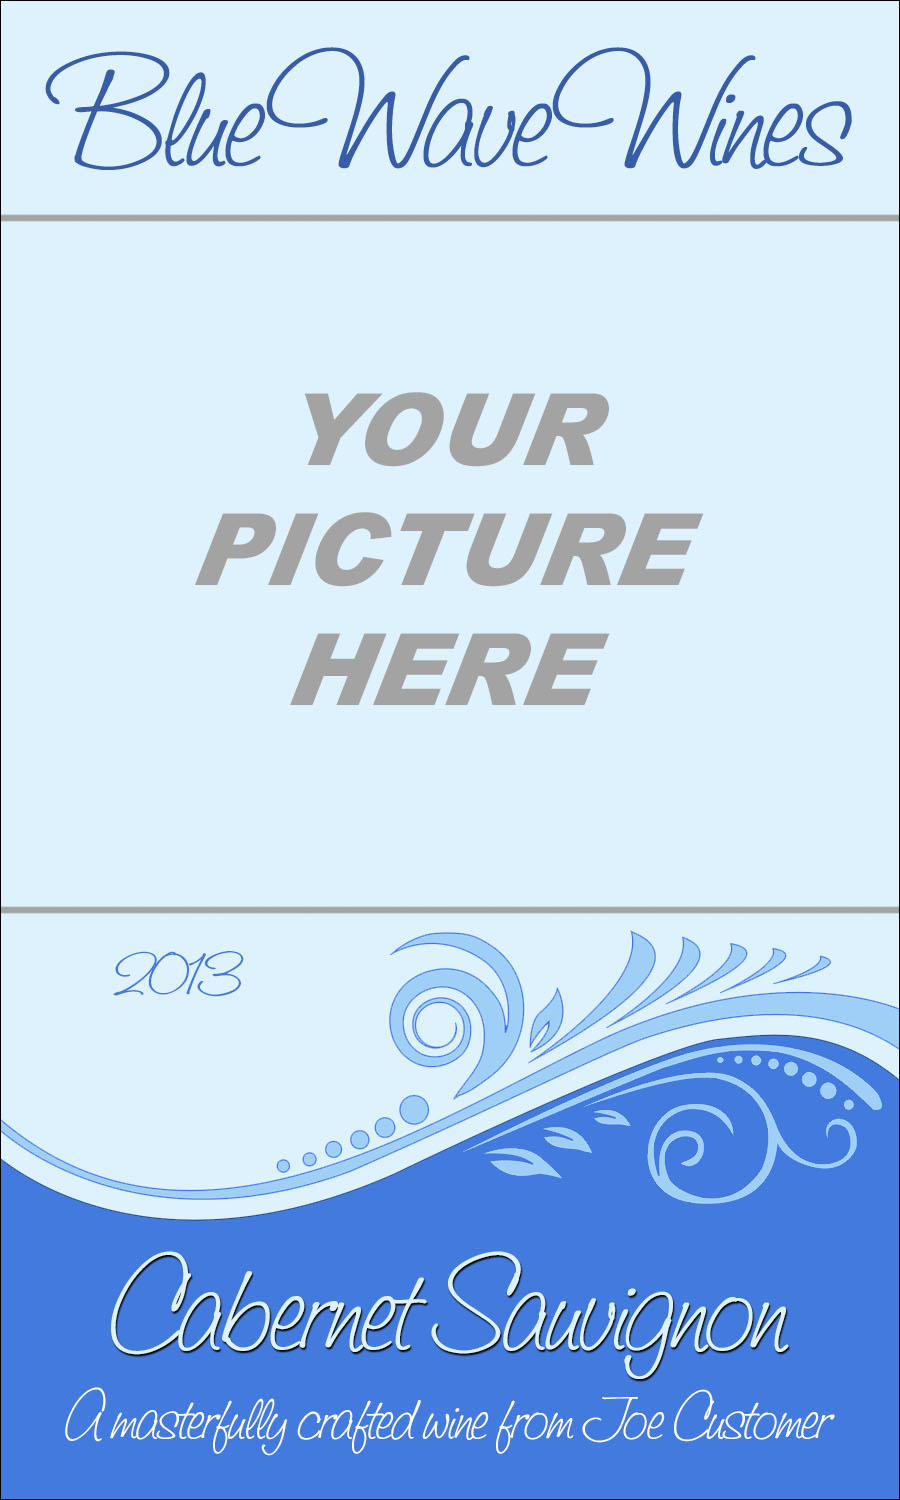 custom wine label intended for you to upload your own image, with blue background and swirly design